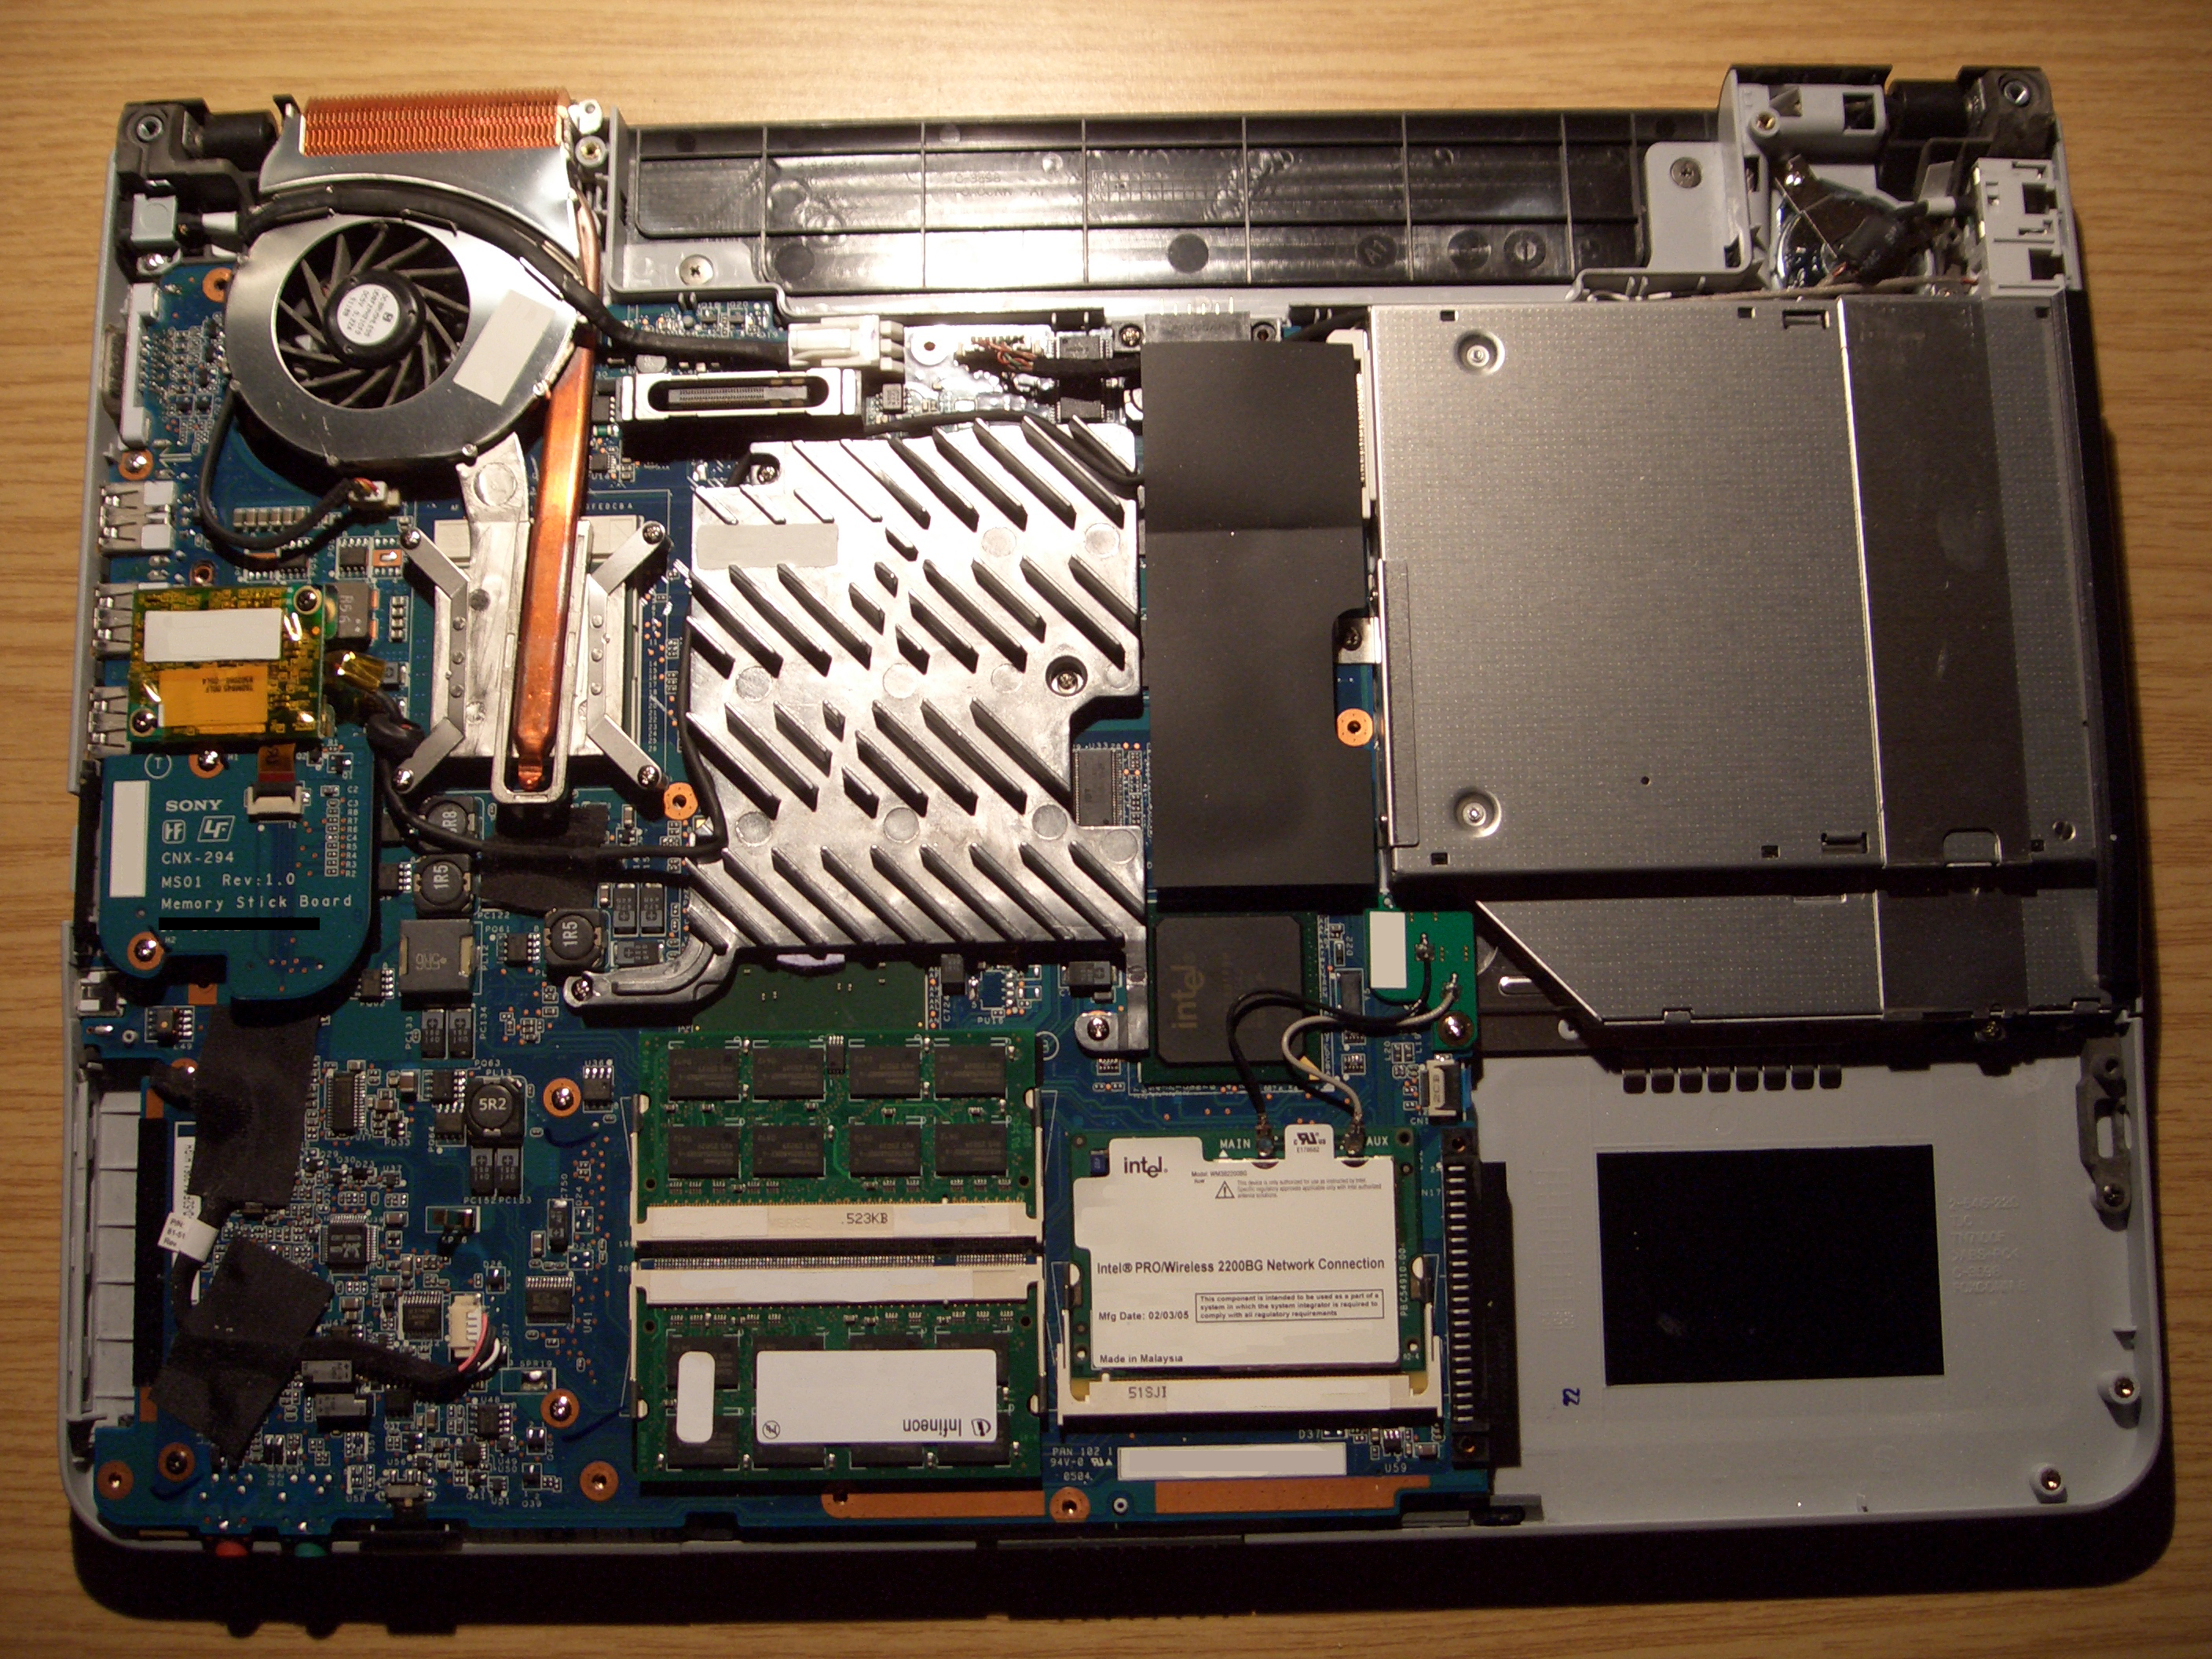 Diagram of the Inside of a Laptop Computer